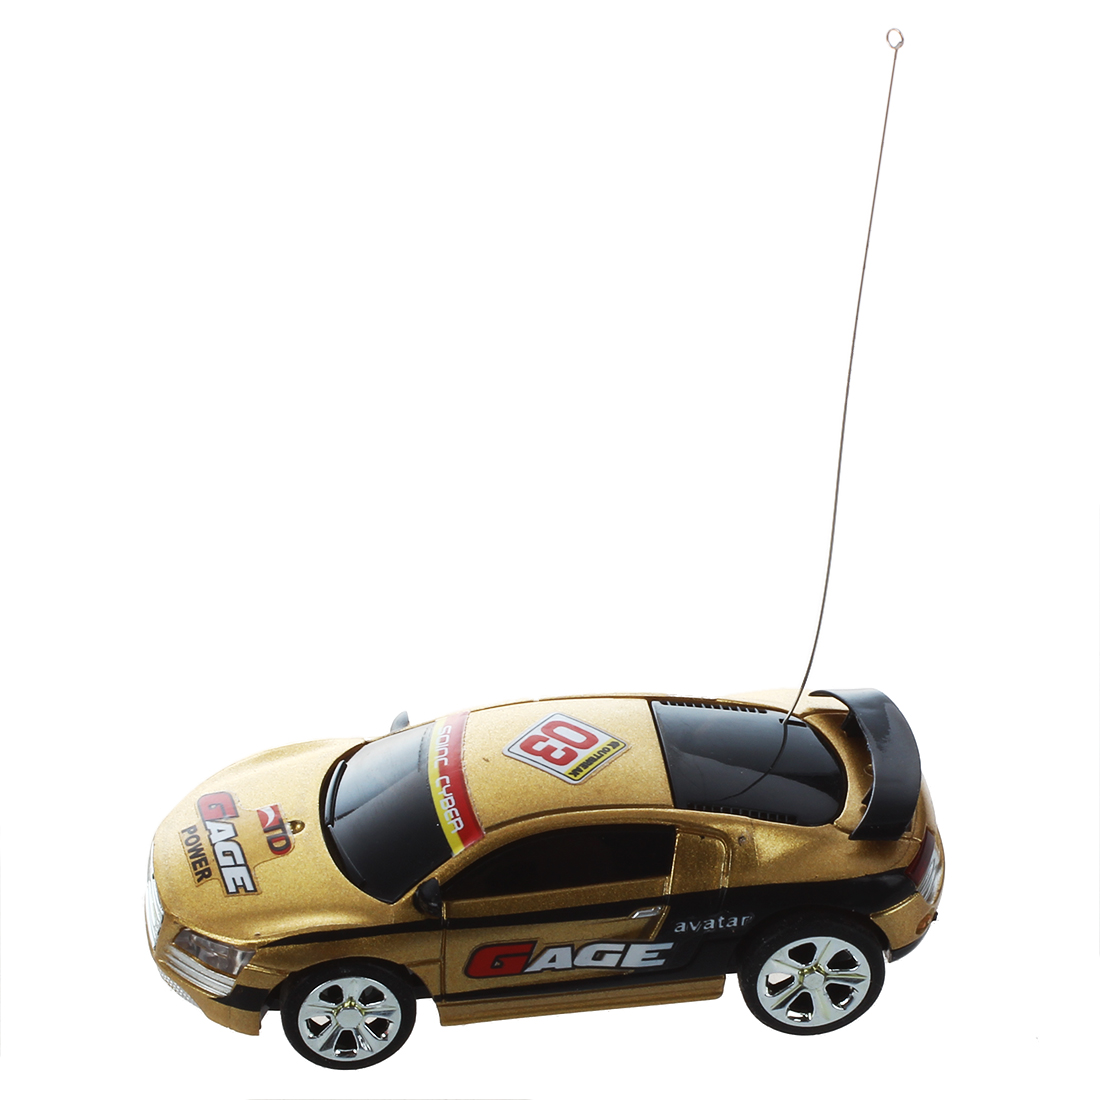 mini miniature voiture vehicule course jouet rc radiocommande telecommande b1s6 ebay. Black Bedroom Furniture Sets. Home Design Ideas